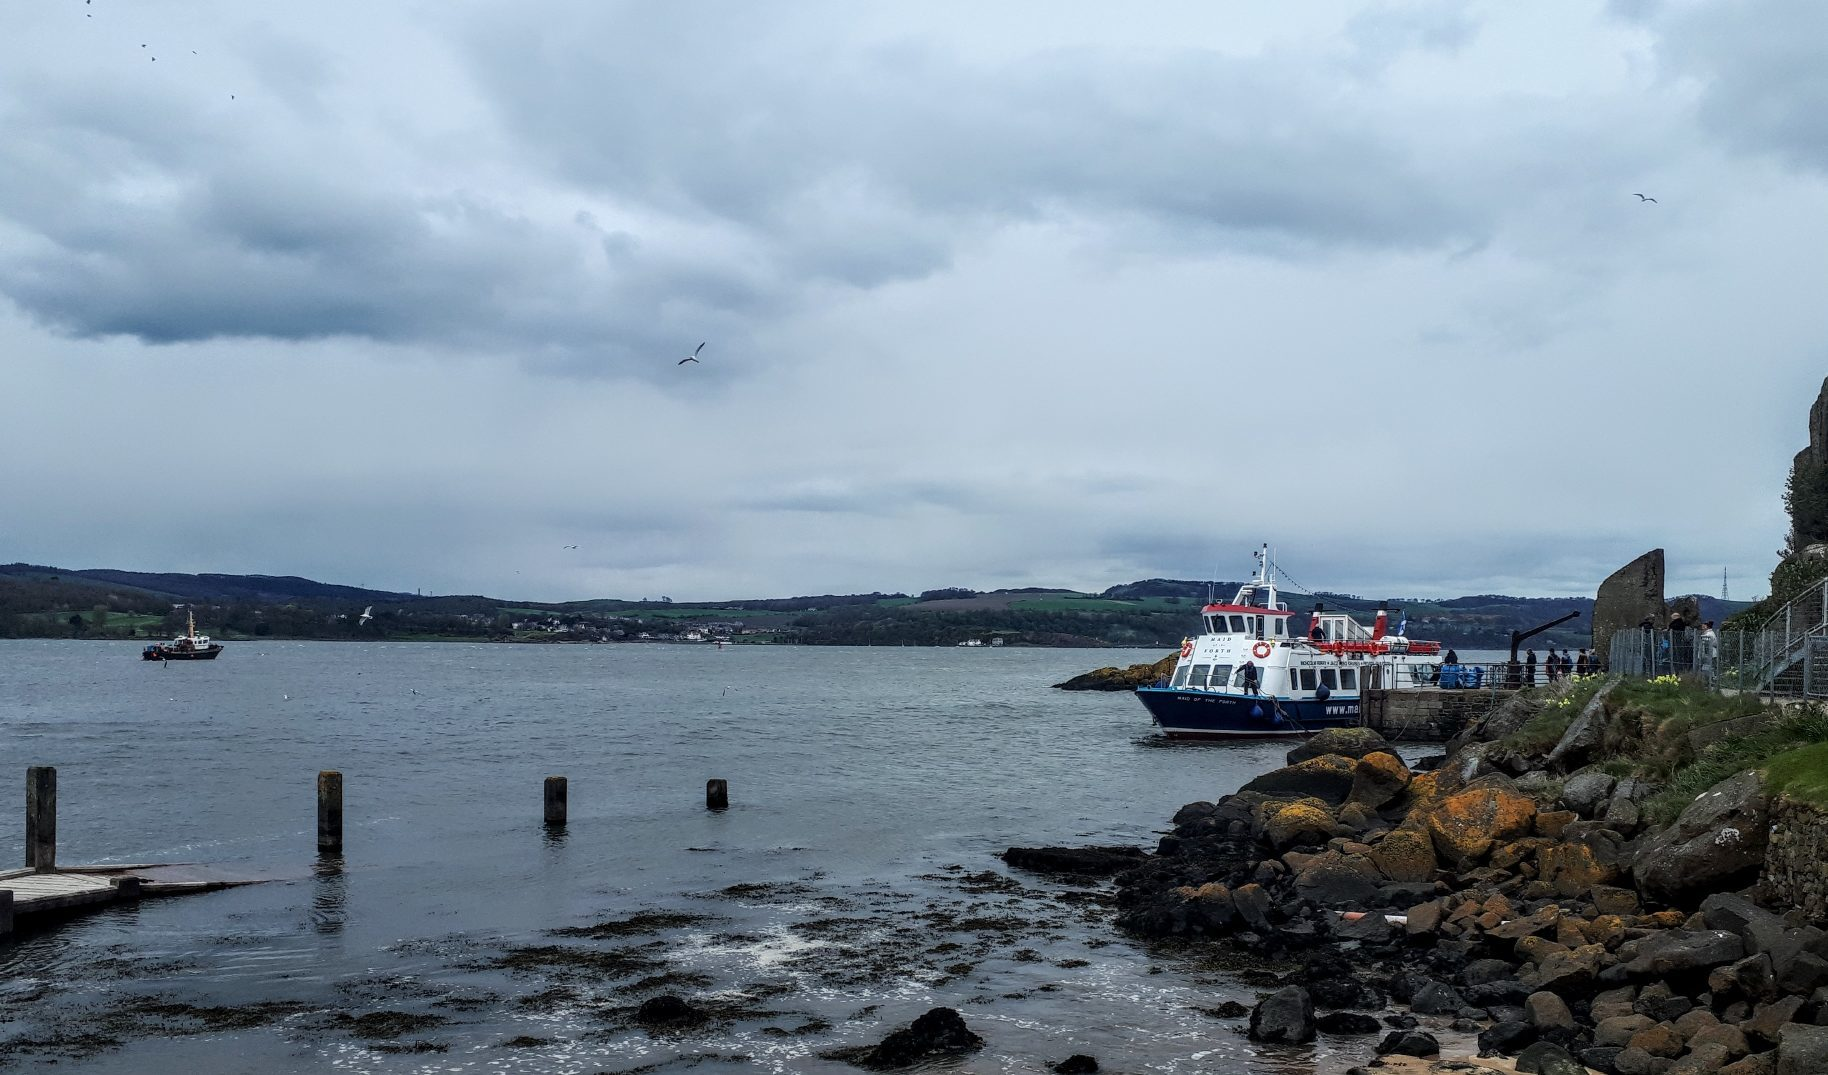 A Maid of the Forth trip to Inchcolm.